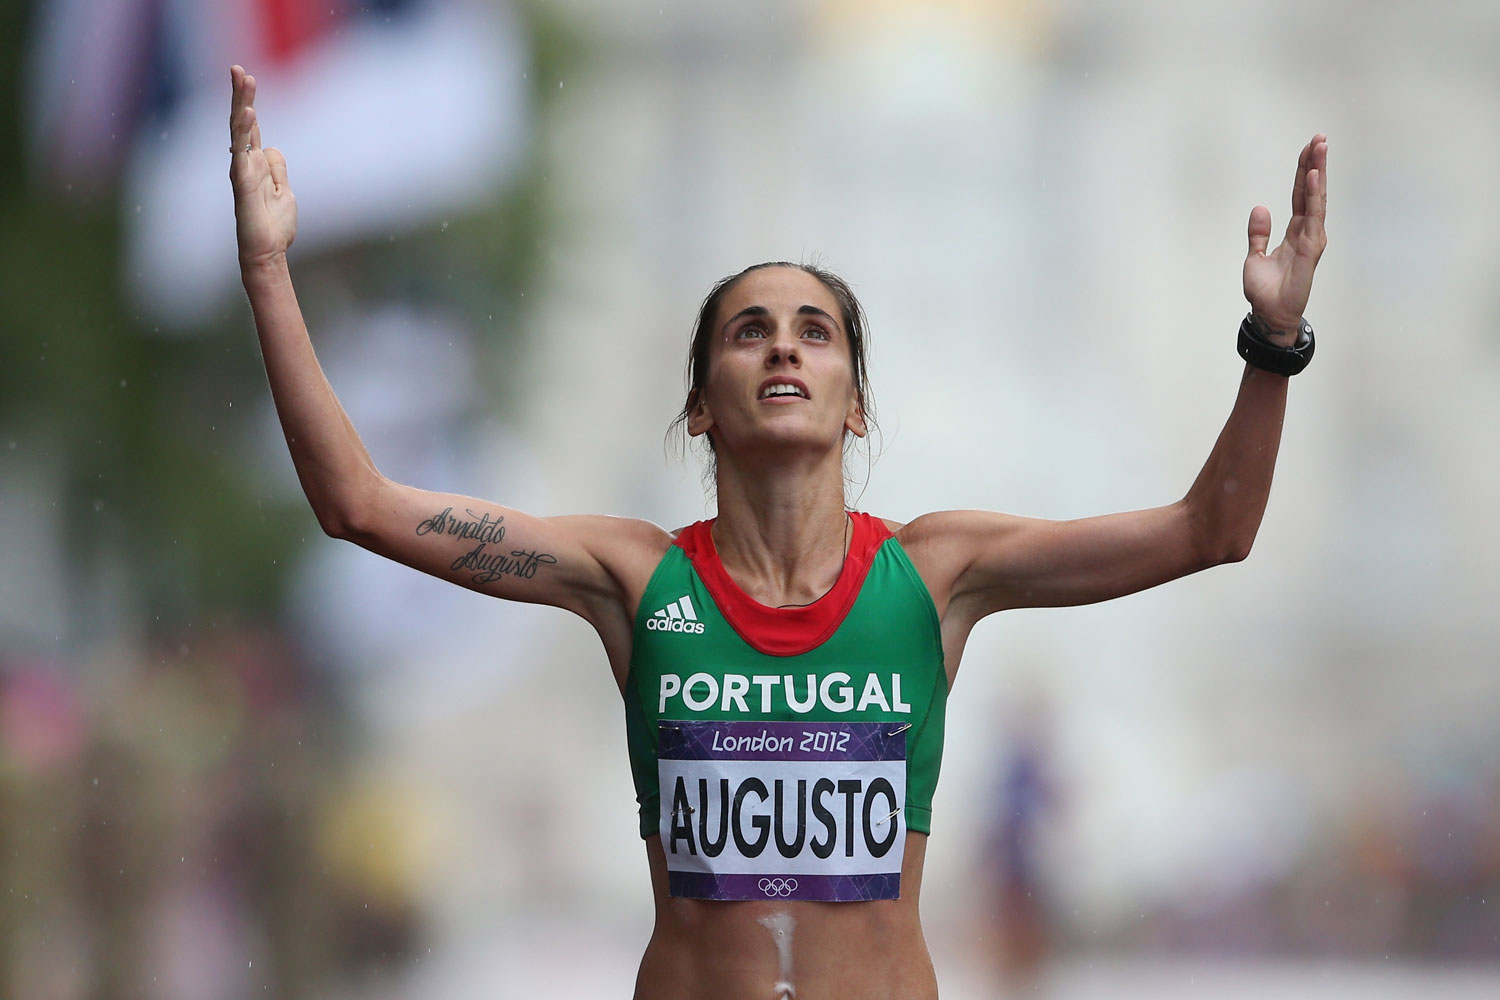 Jessica Augusto of Portugal crosses the finish line during the Women's Marathon on Day 9 of the 2012 London Olympic Games.